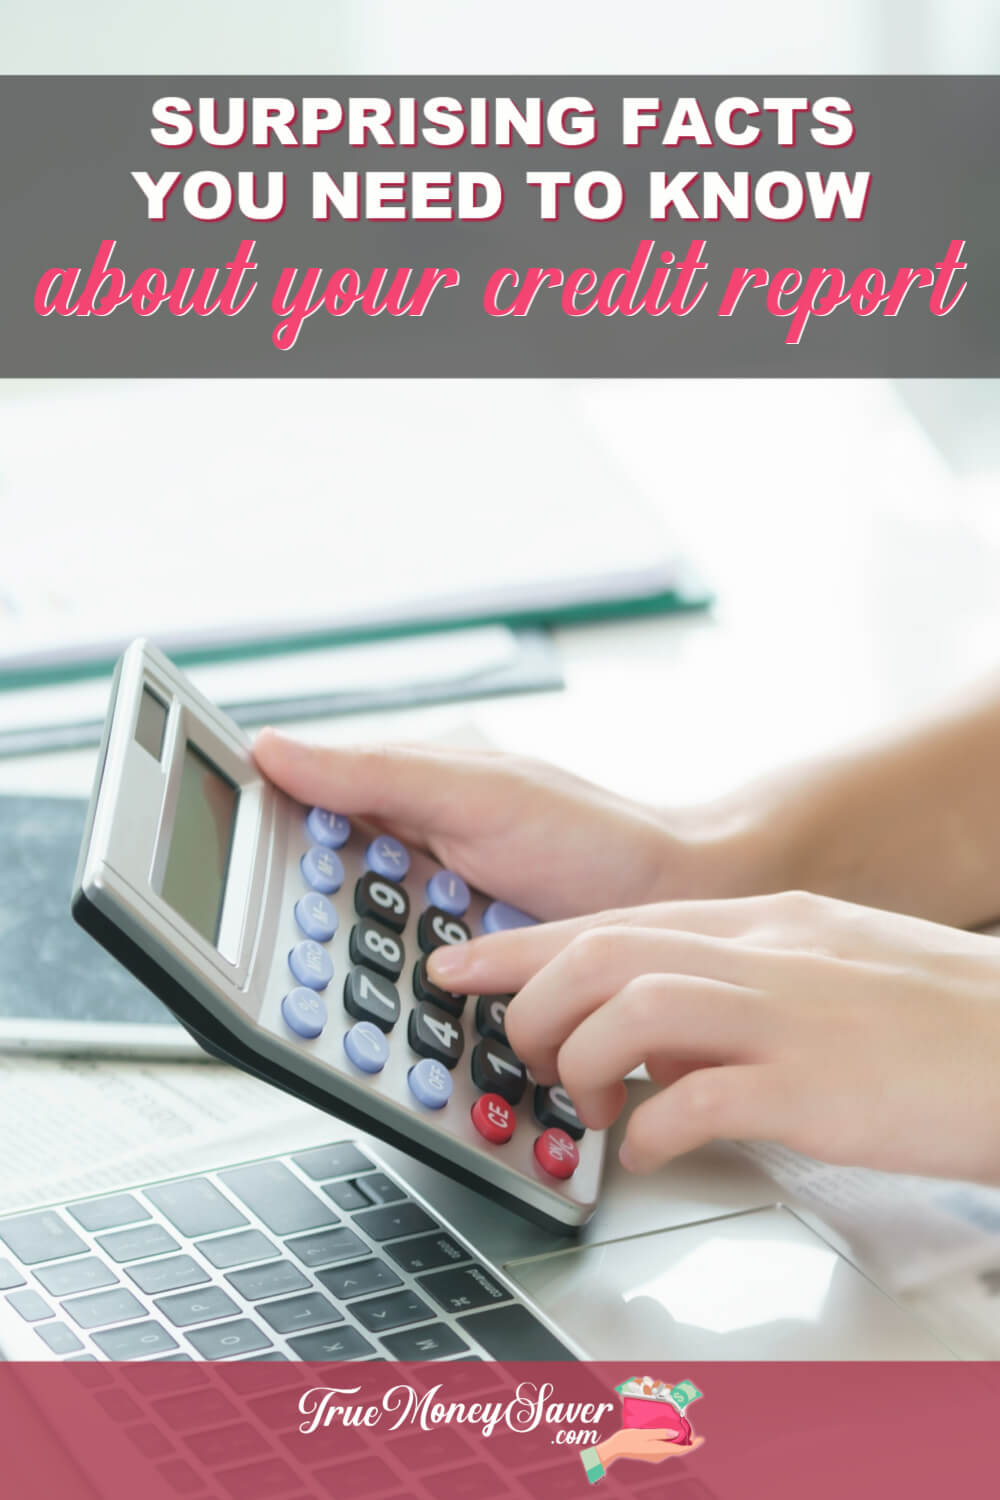 Your credit report is more important than you realize! Get informed about your credit with these surprising facts about your credit report today! #truemoneysaver #debt #credit #creditreport #creditscore #savingmoney